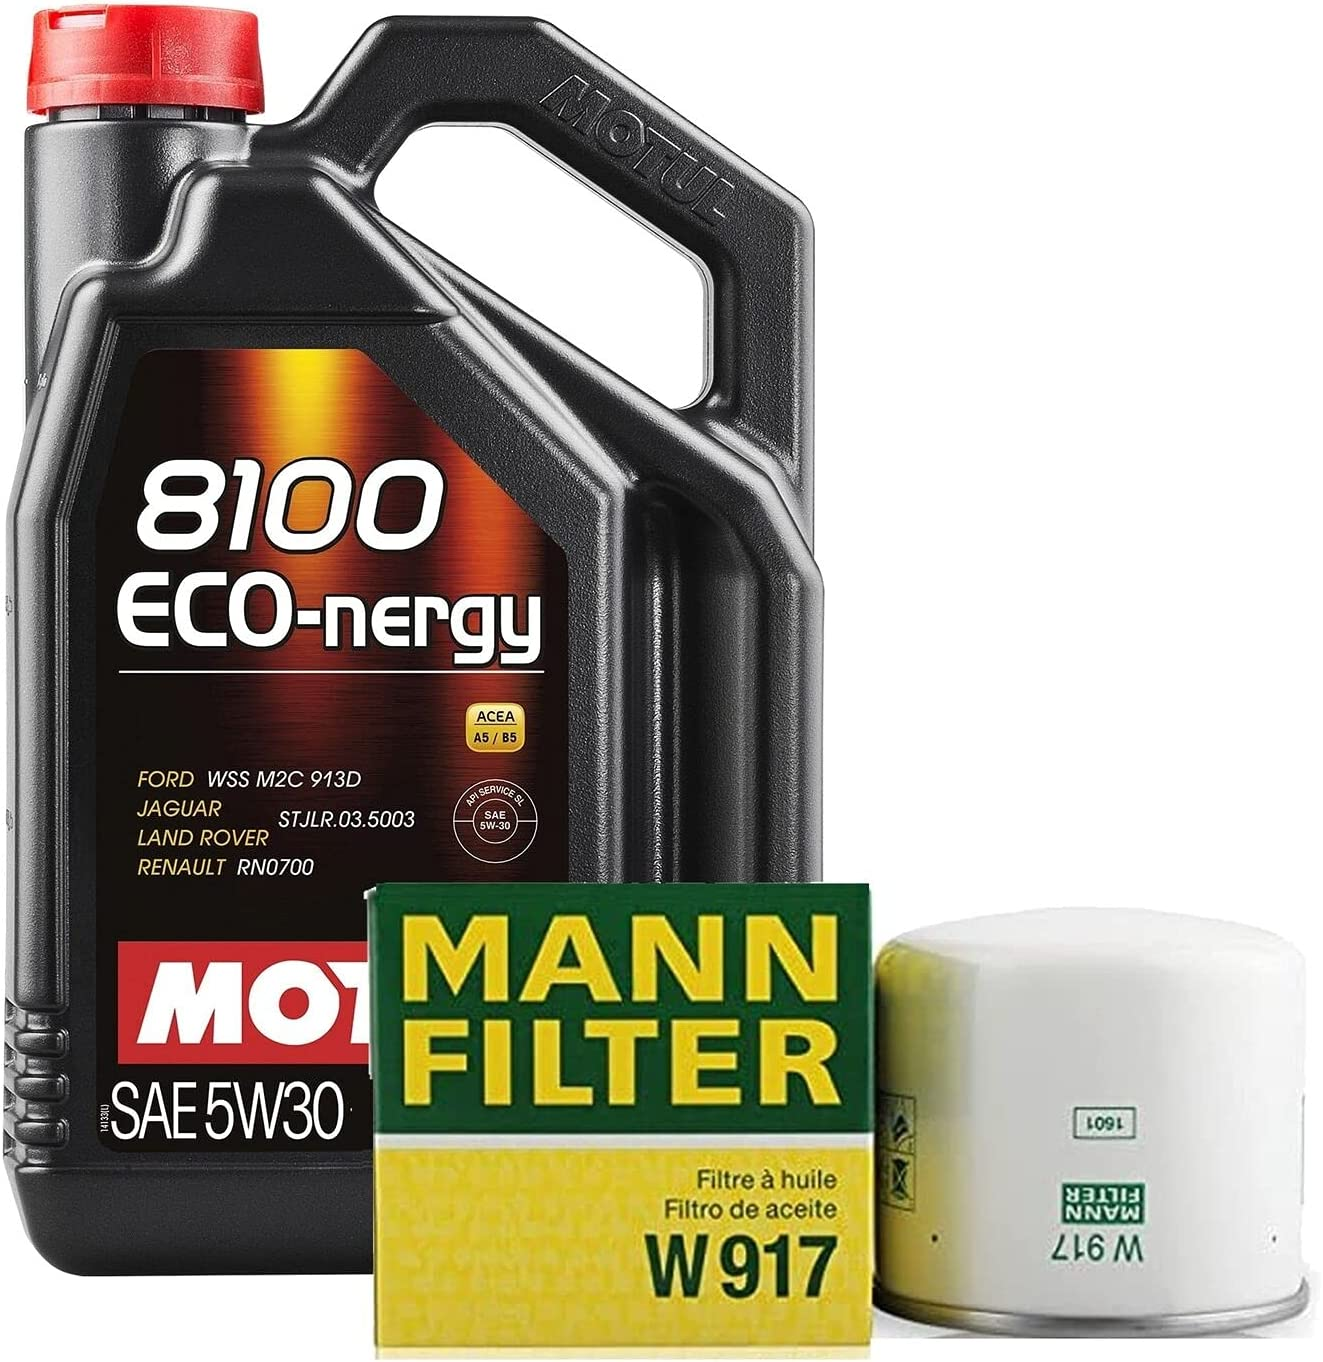 5L cheap 8100 ECONERGY 5W30 Filter Motor Oil wit Compatible Change Trust kit